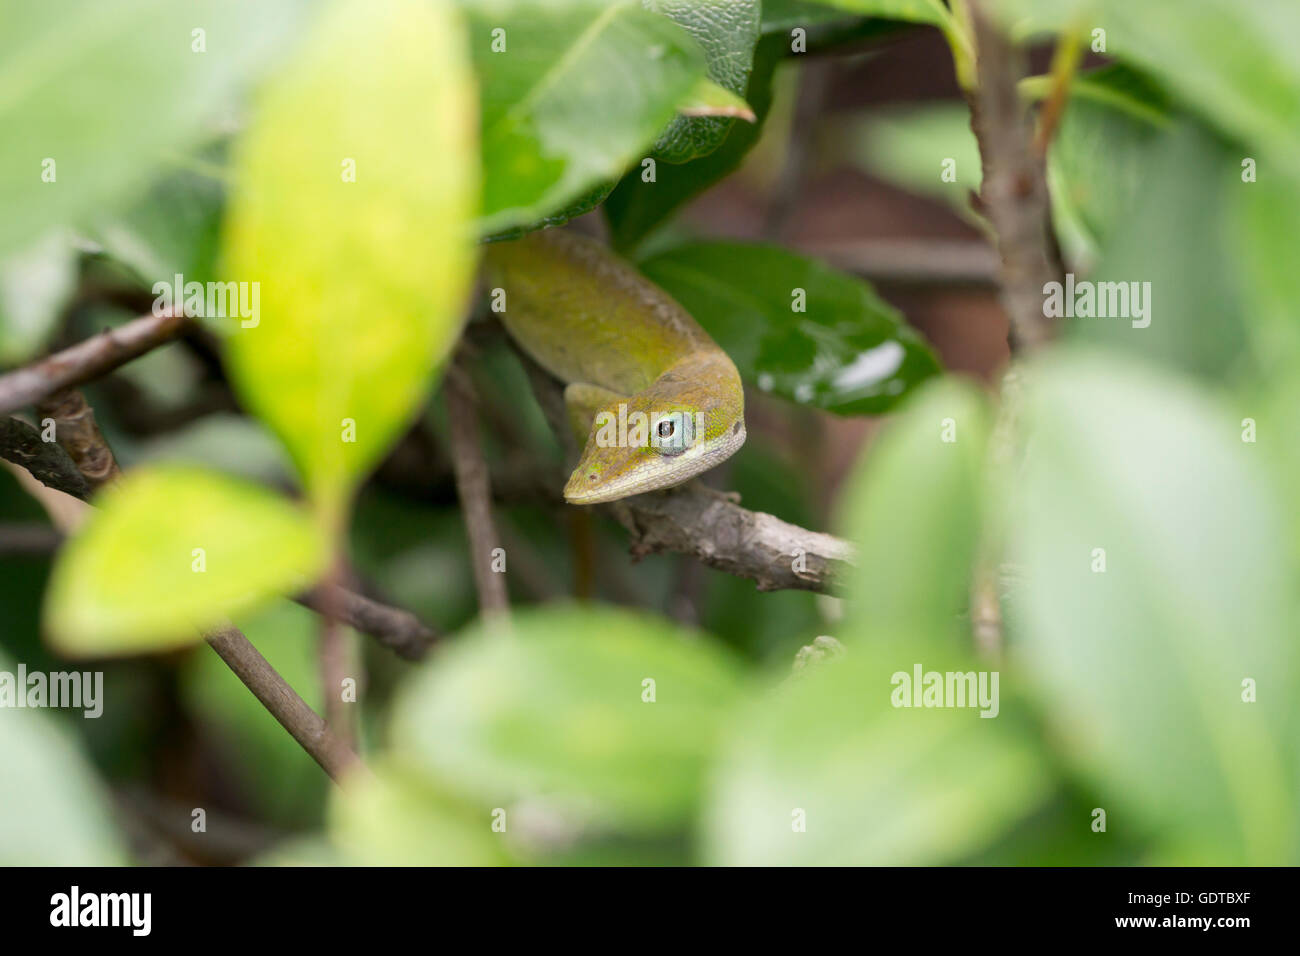 A green anole hides amongst the bush leaves Stock Photo